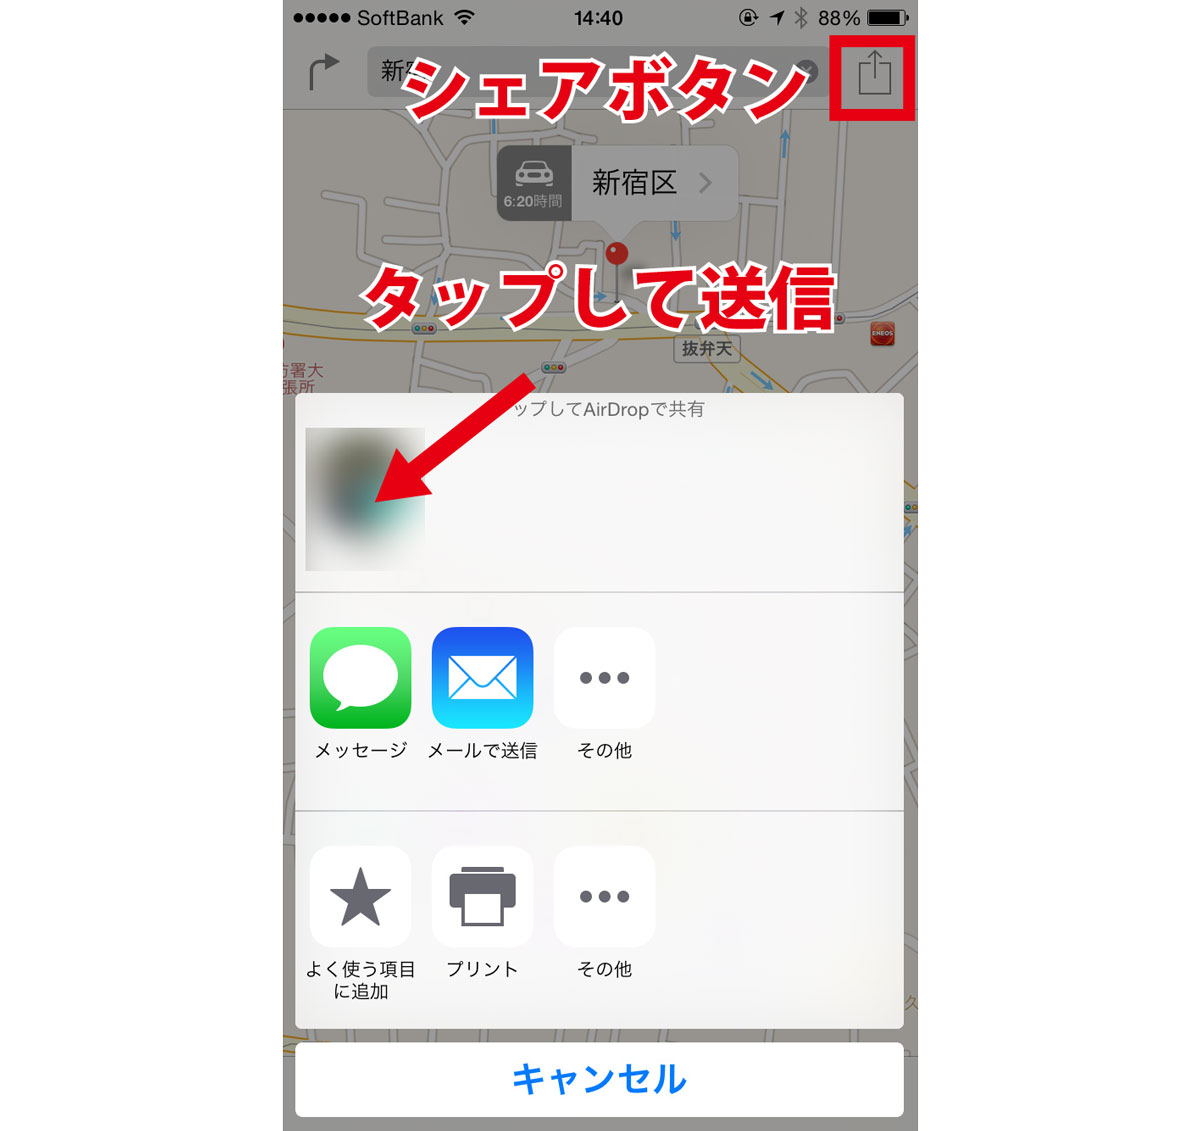 Air drop iPhoneから送信